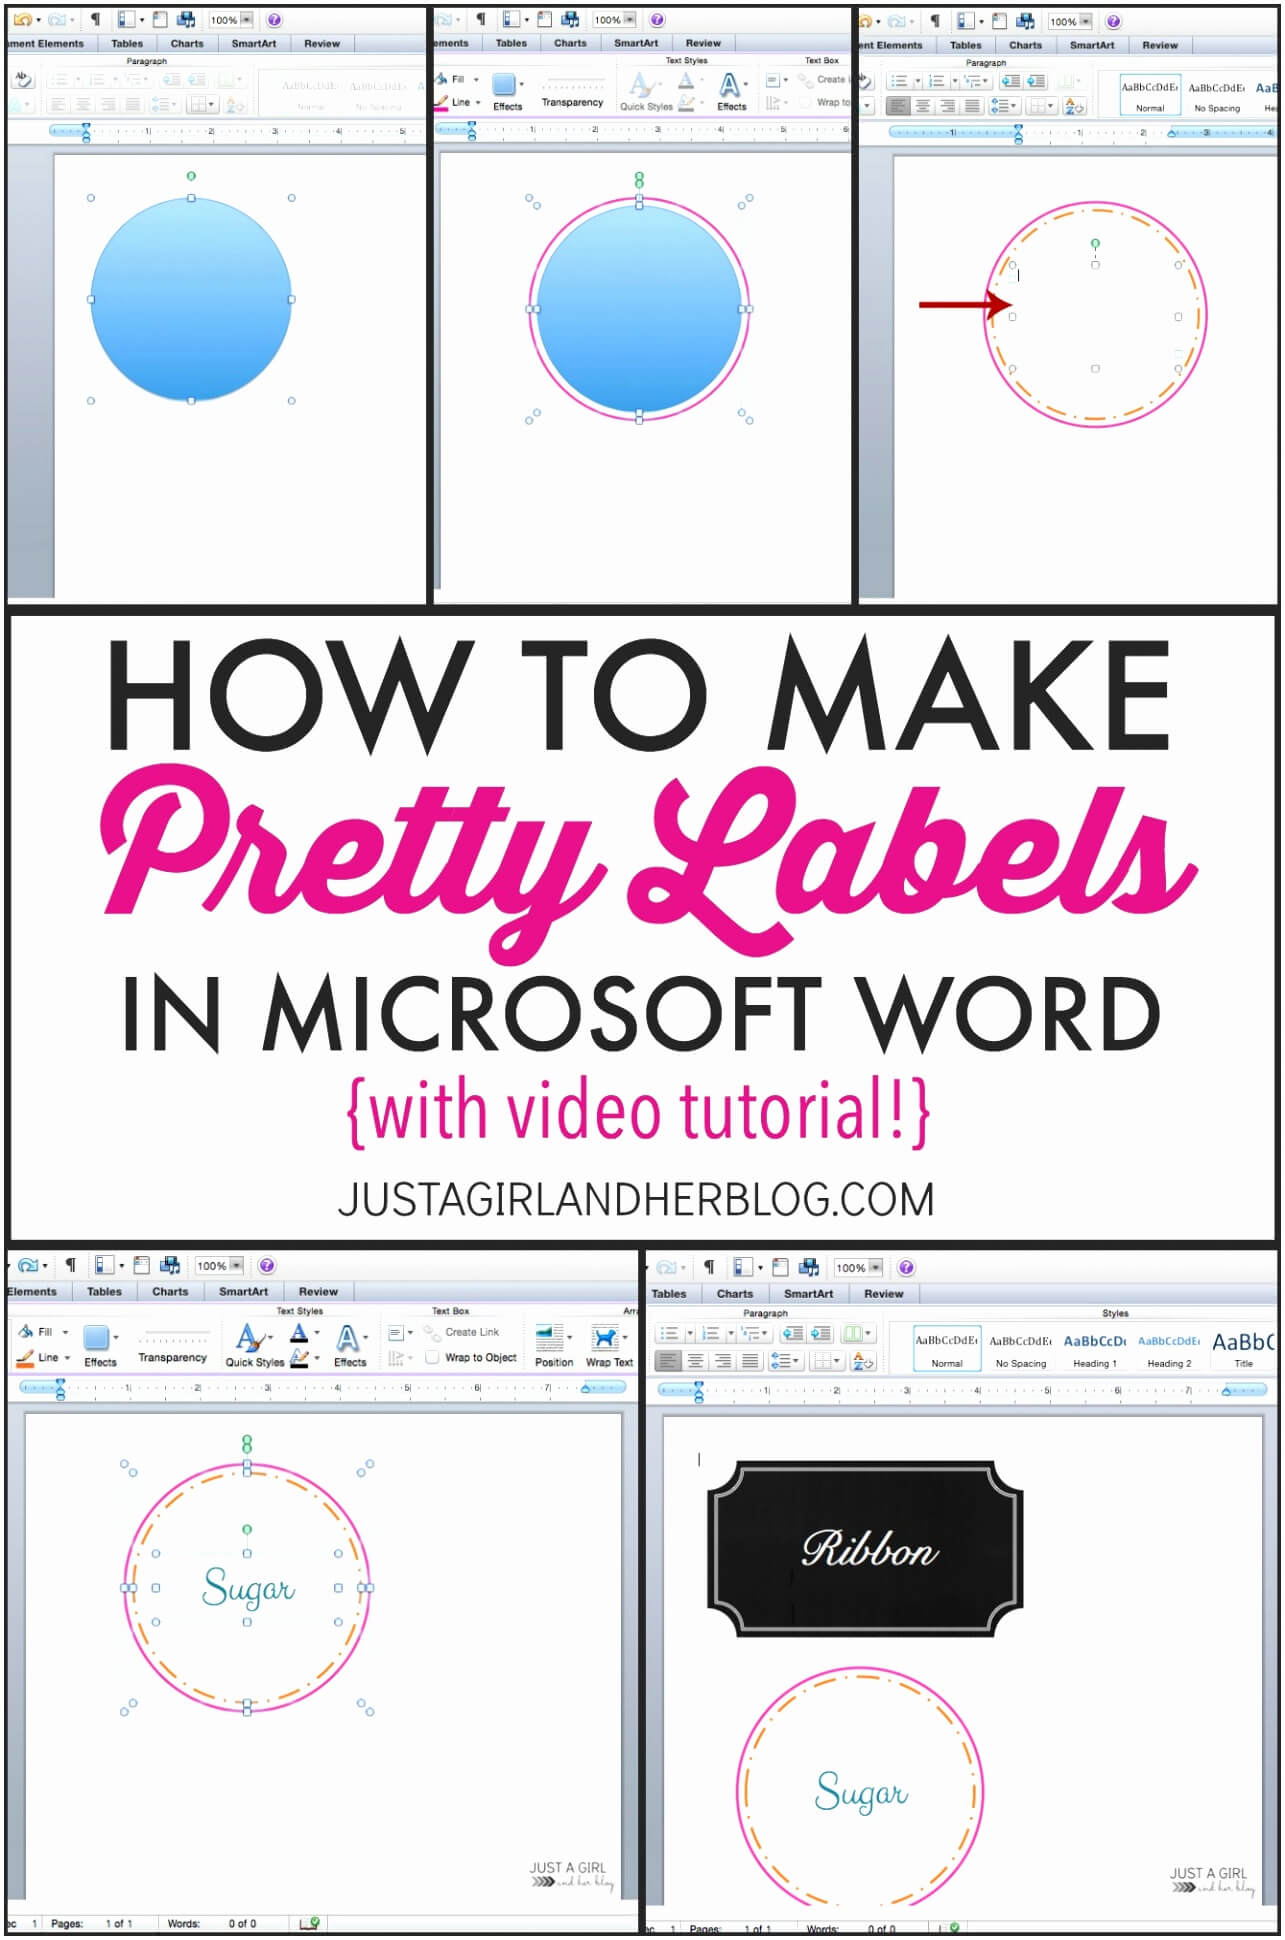 Formtec Label Template In Microsoft Word – Prahu pertaining to Microsoft Word Sticker Label Template